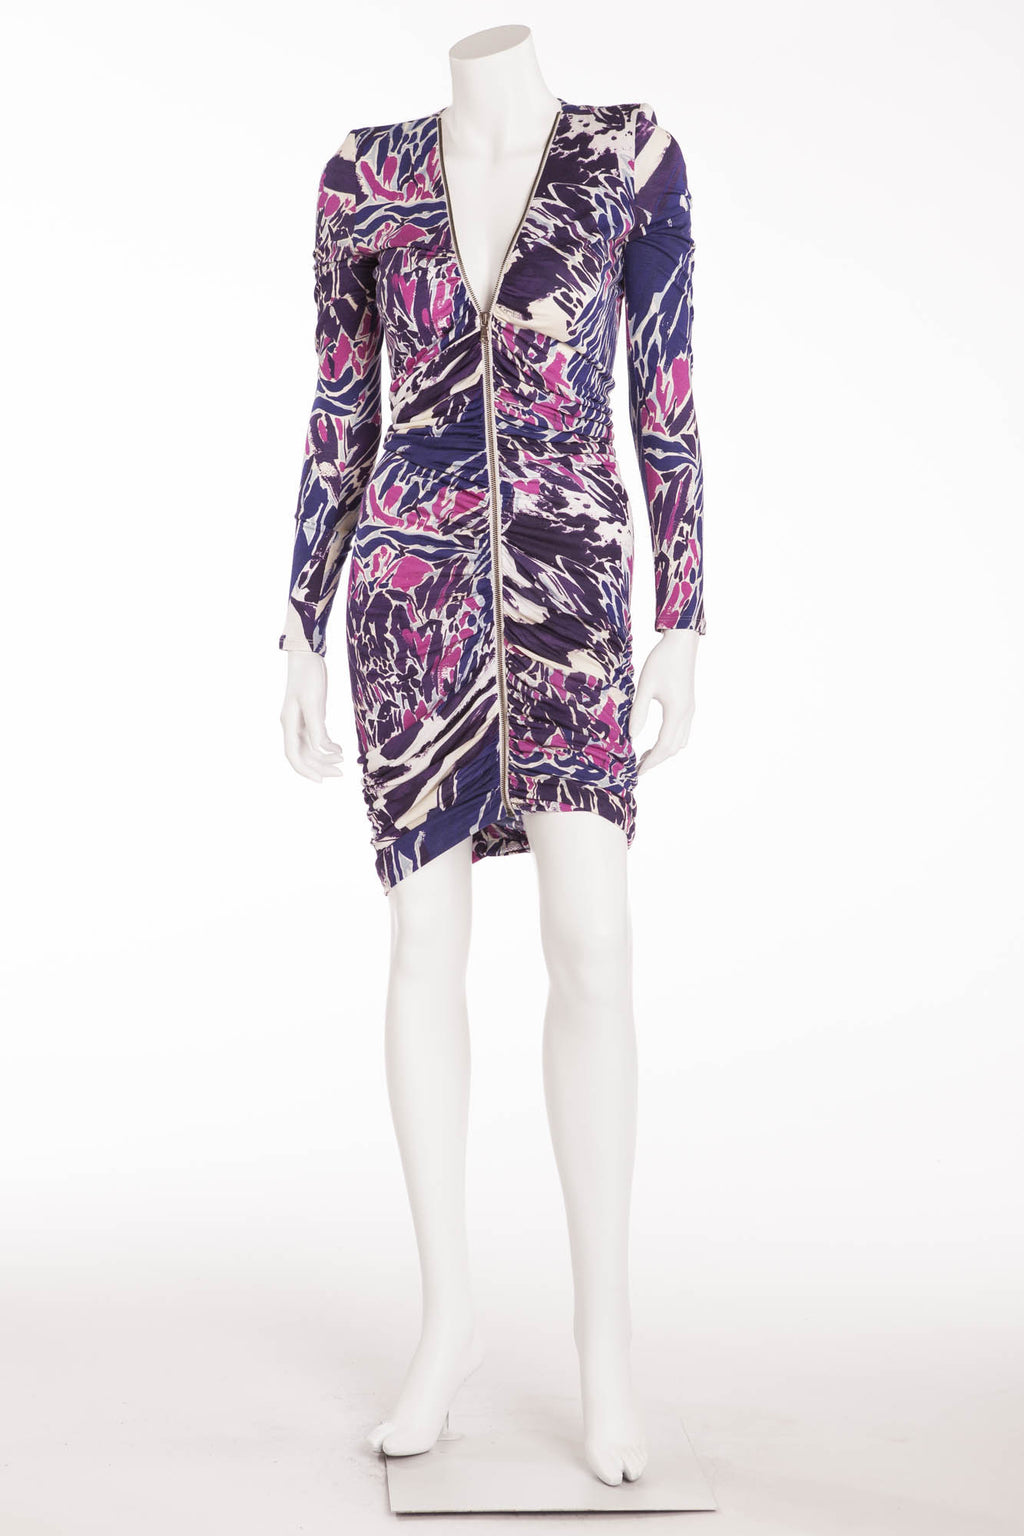 Emillio Pucci - Purple and Pink Zippered Dress - IT 42